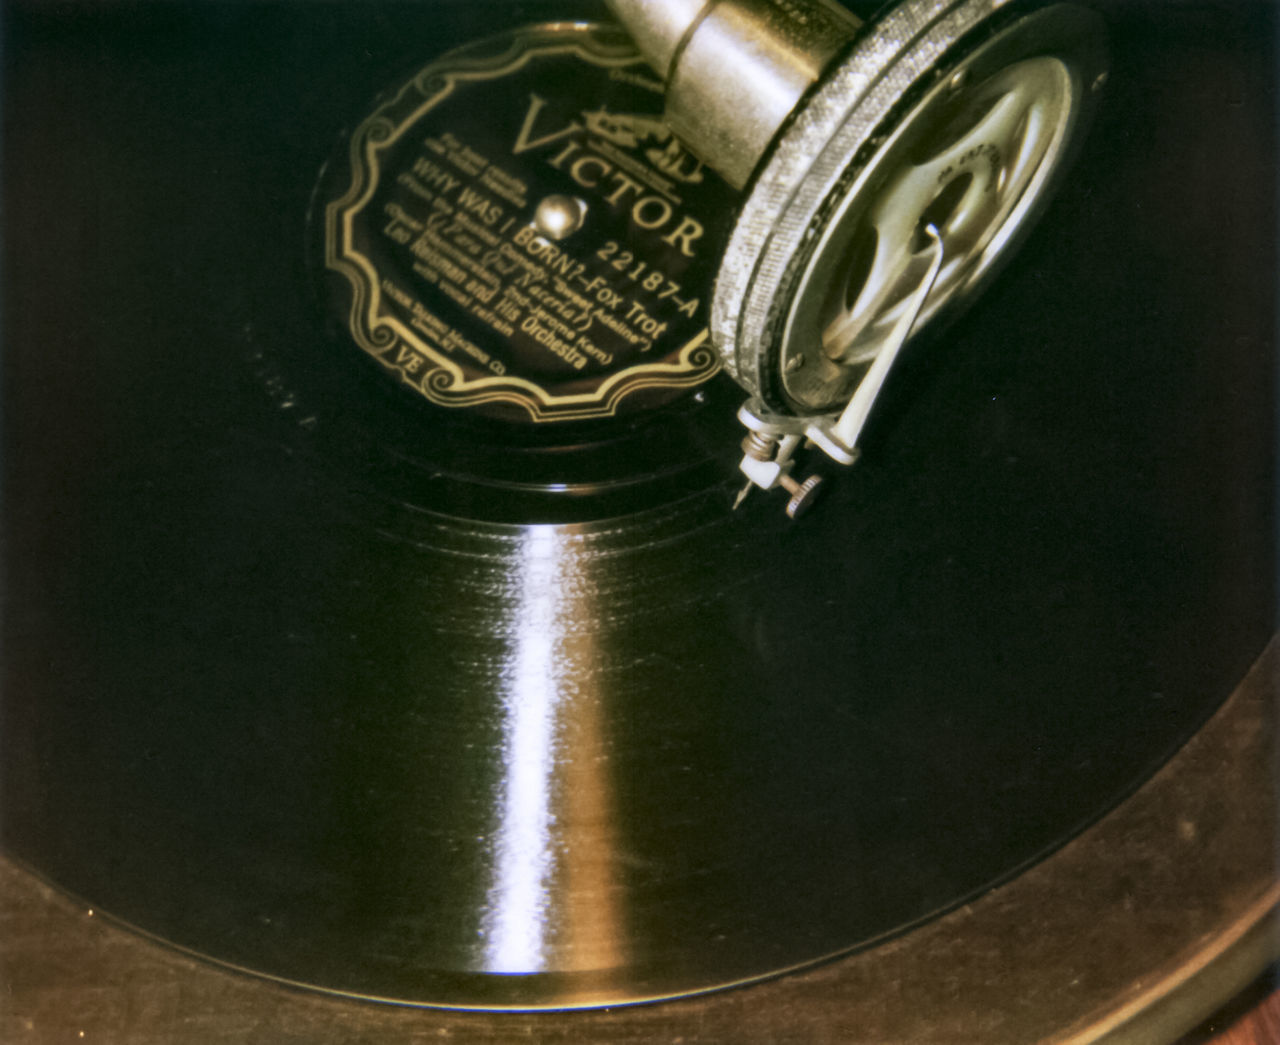 78rpm Records Grammaphone Motion Mu Need Old-fashioned Record Groove Reproduction Shiny Stylus Victor Record Victrola Why Was I Born